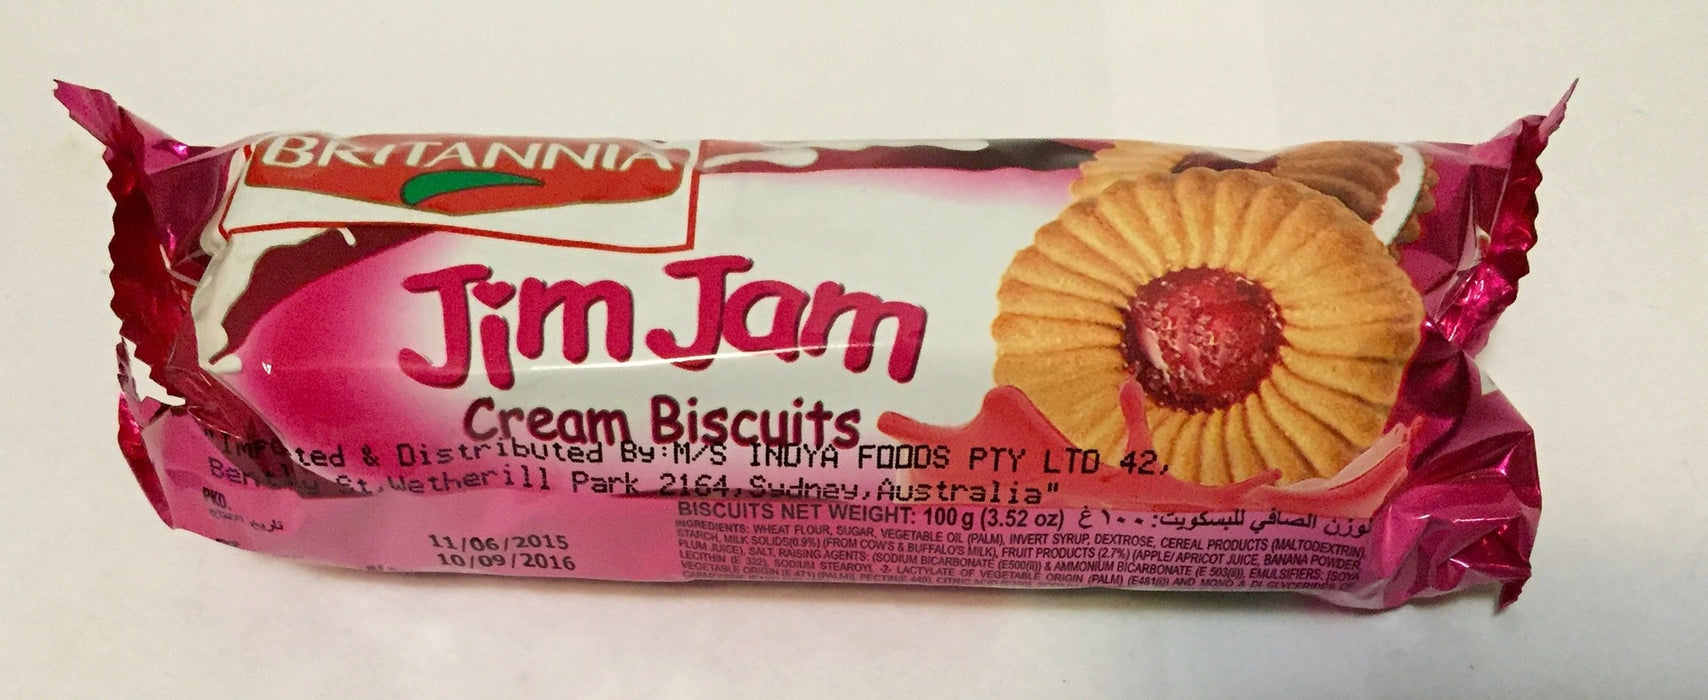 Britannia Jim Jam biscuits 100gm